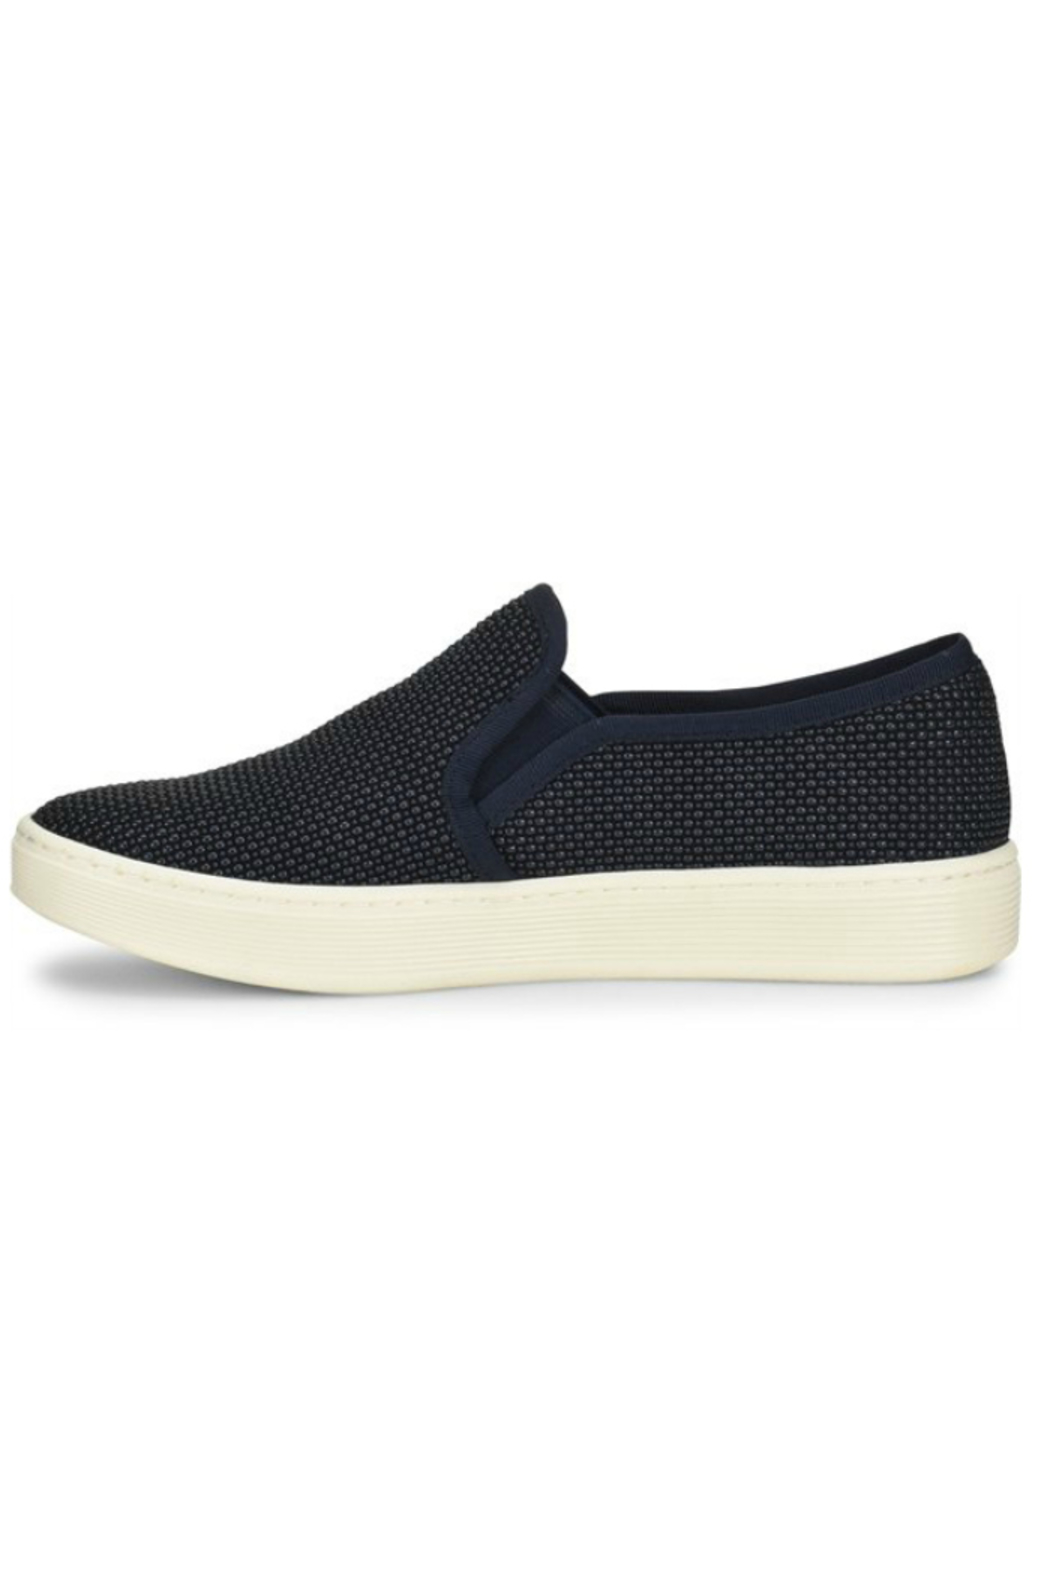 Sofft Women's Somers Slip-on - Main Image